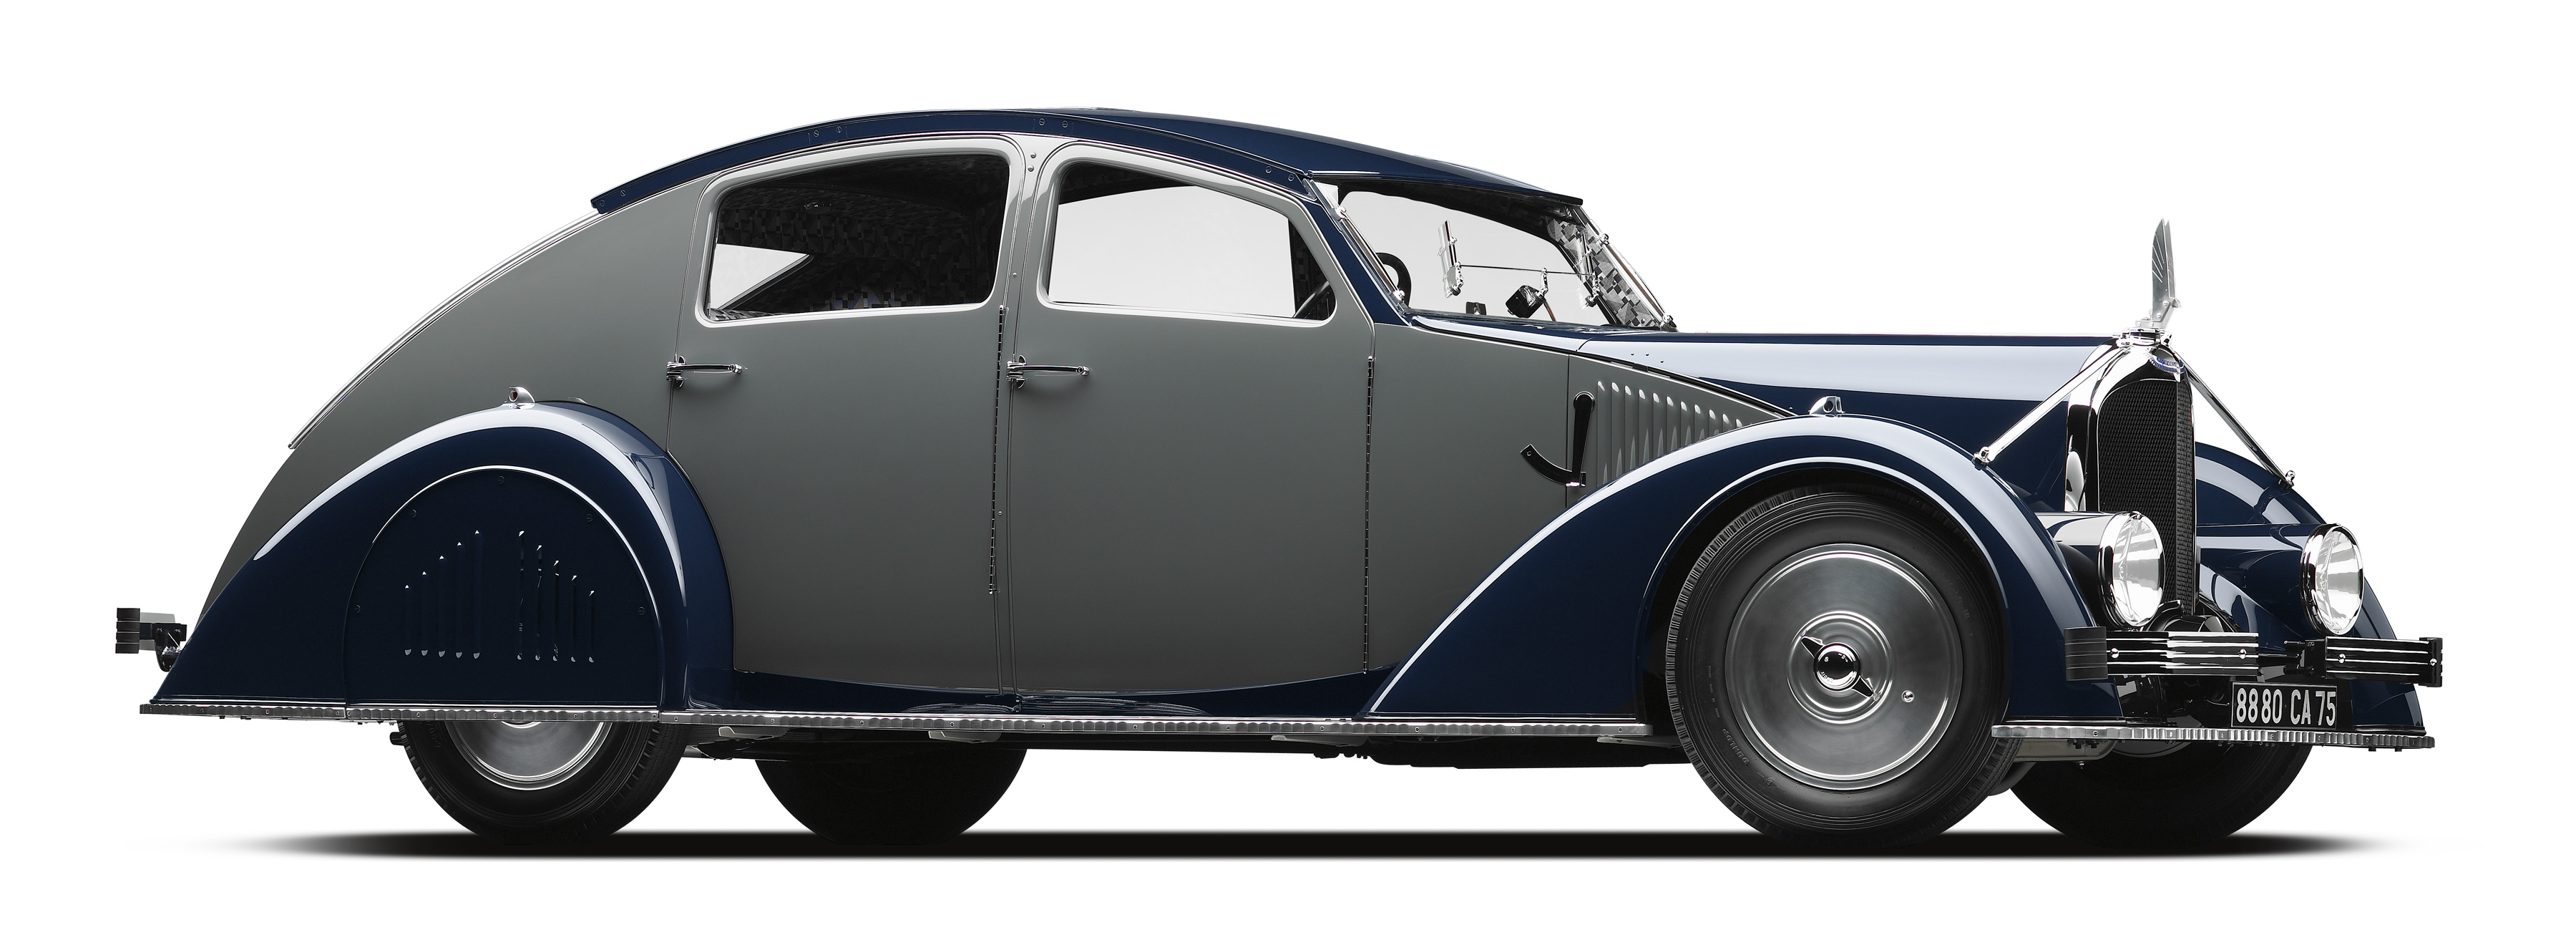 Voisin c25 photo - 3